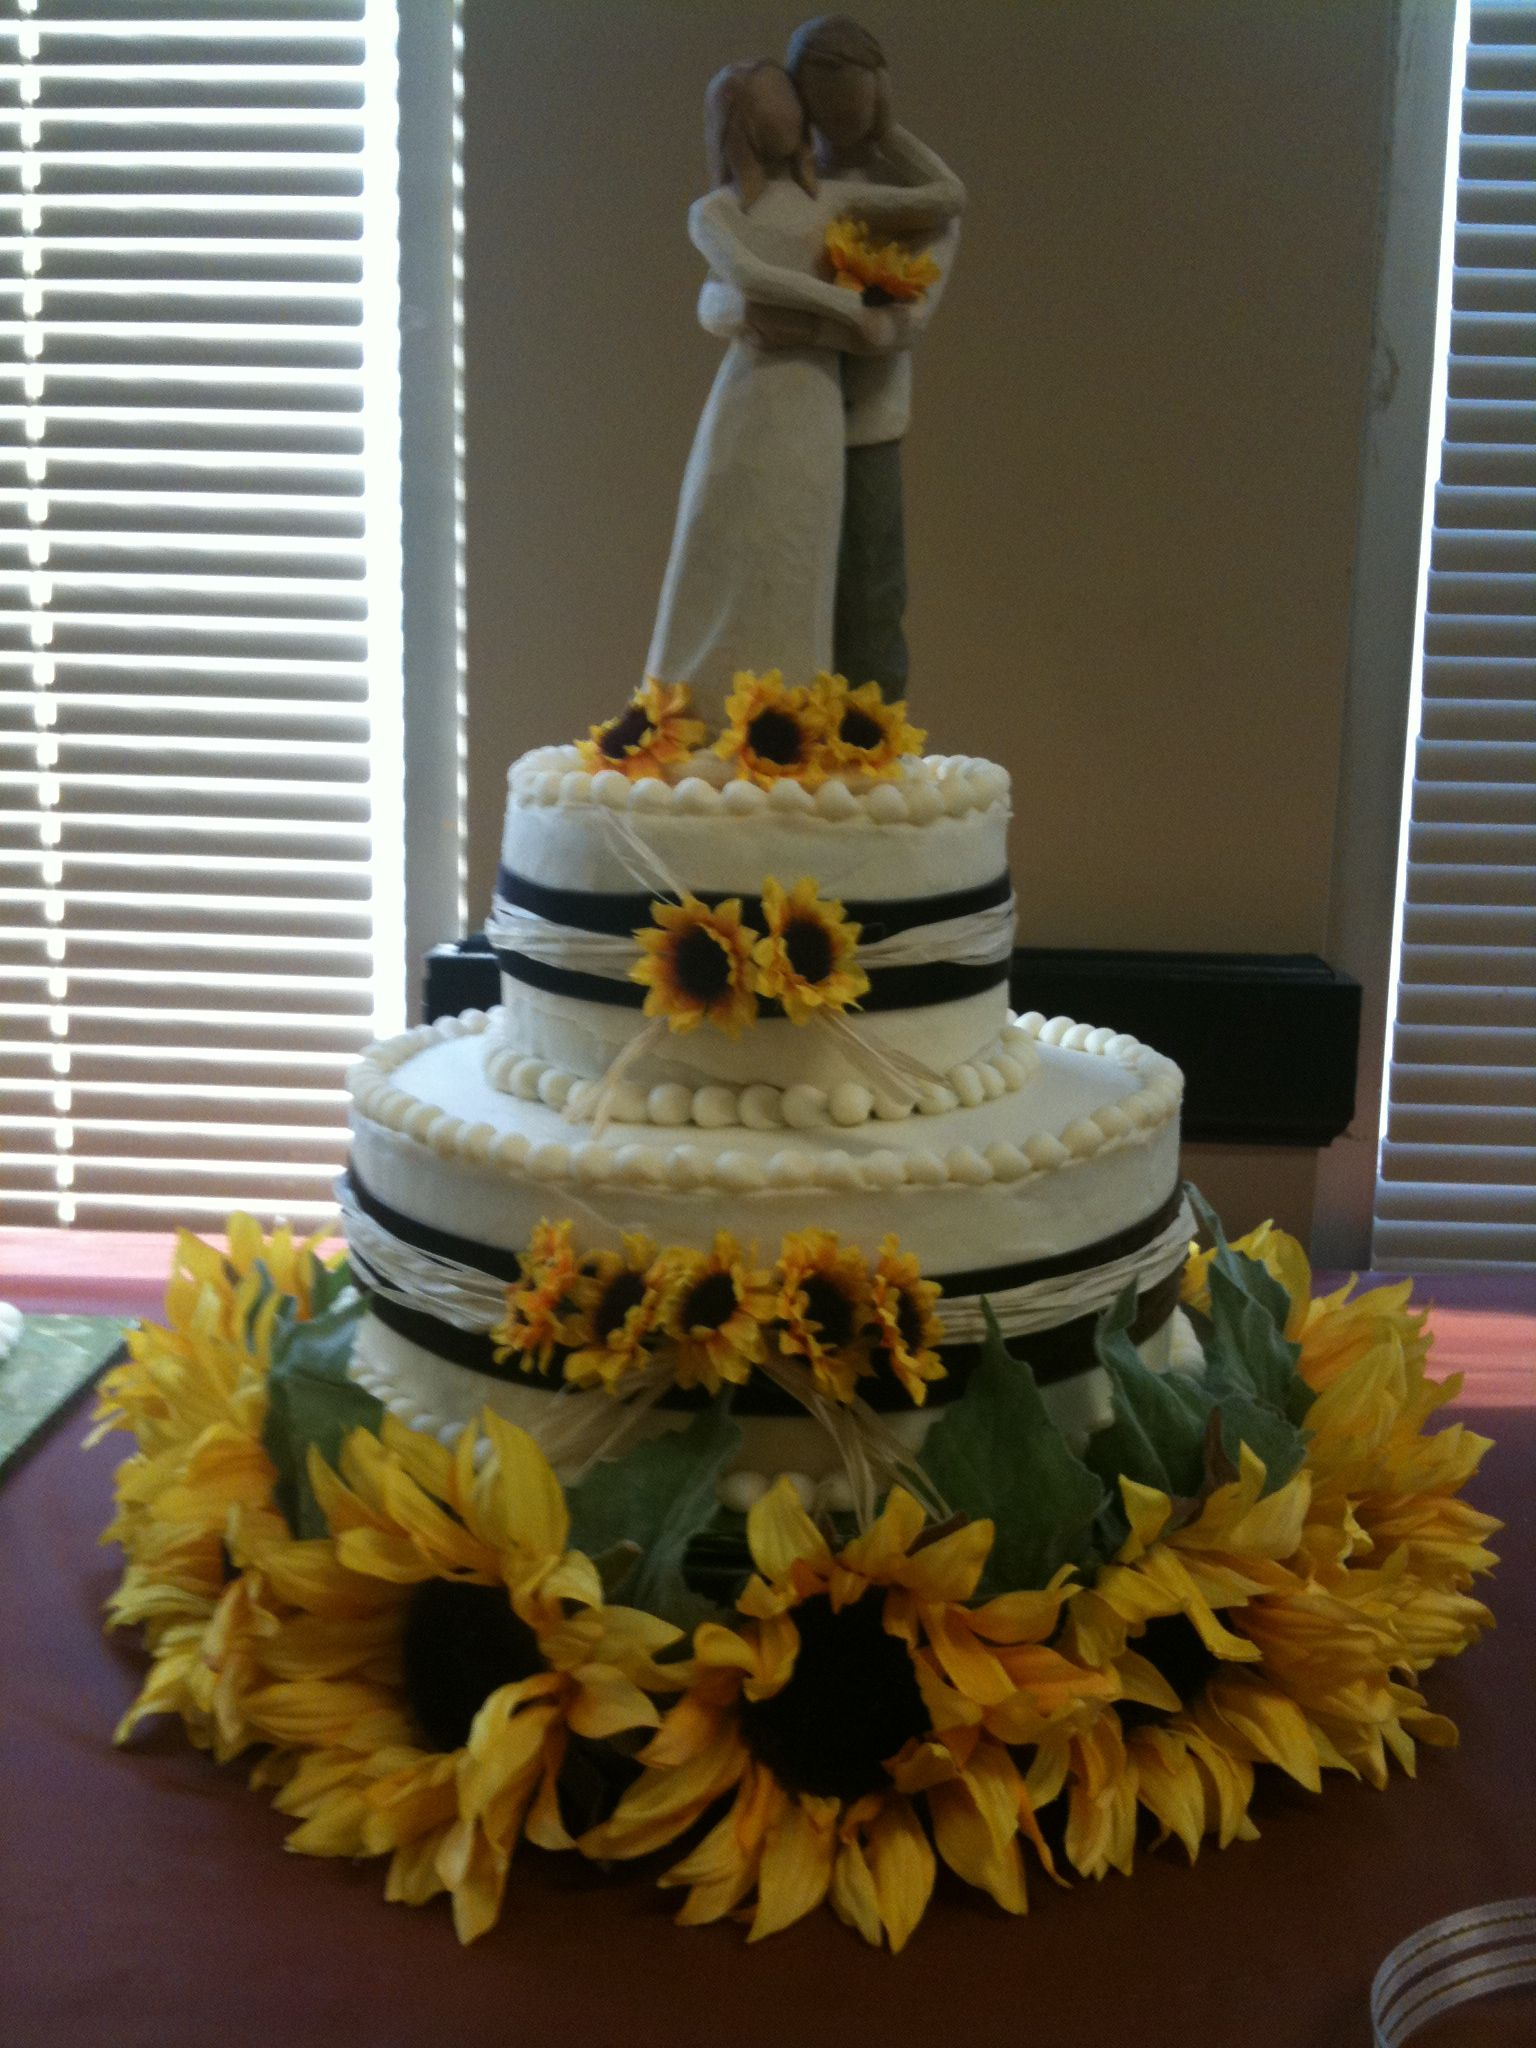 Love the cake topper with the sunflowers but there's too